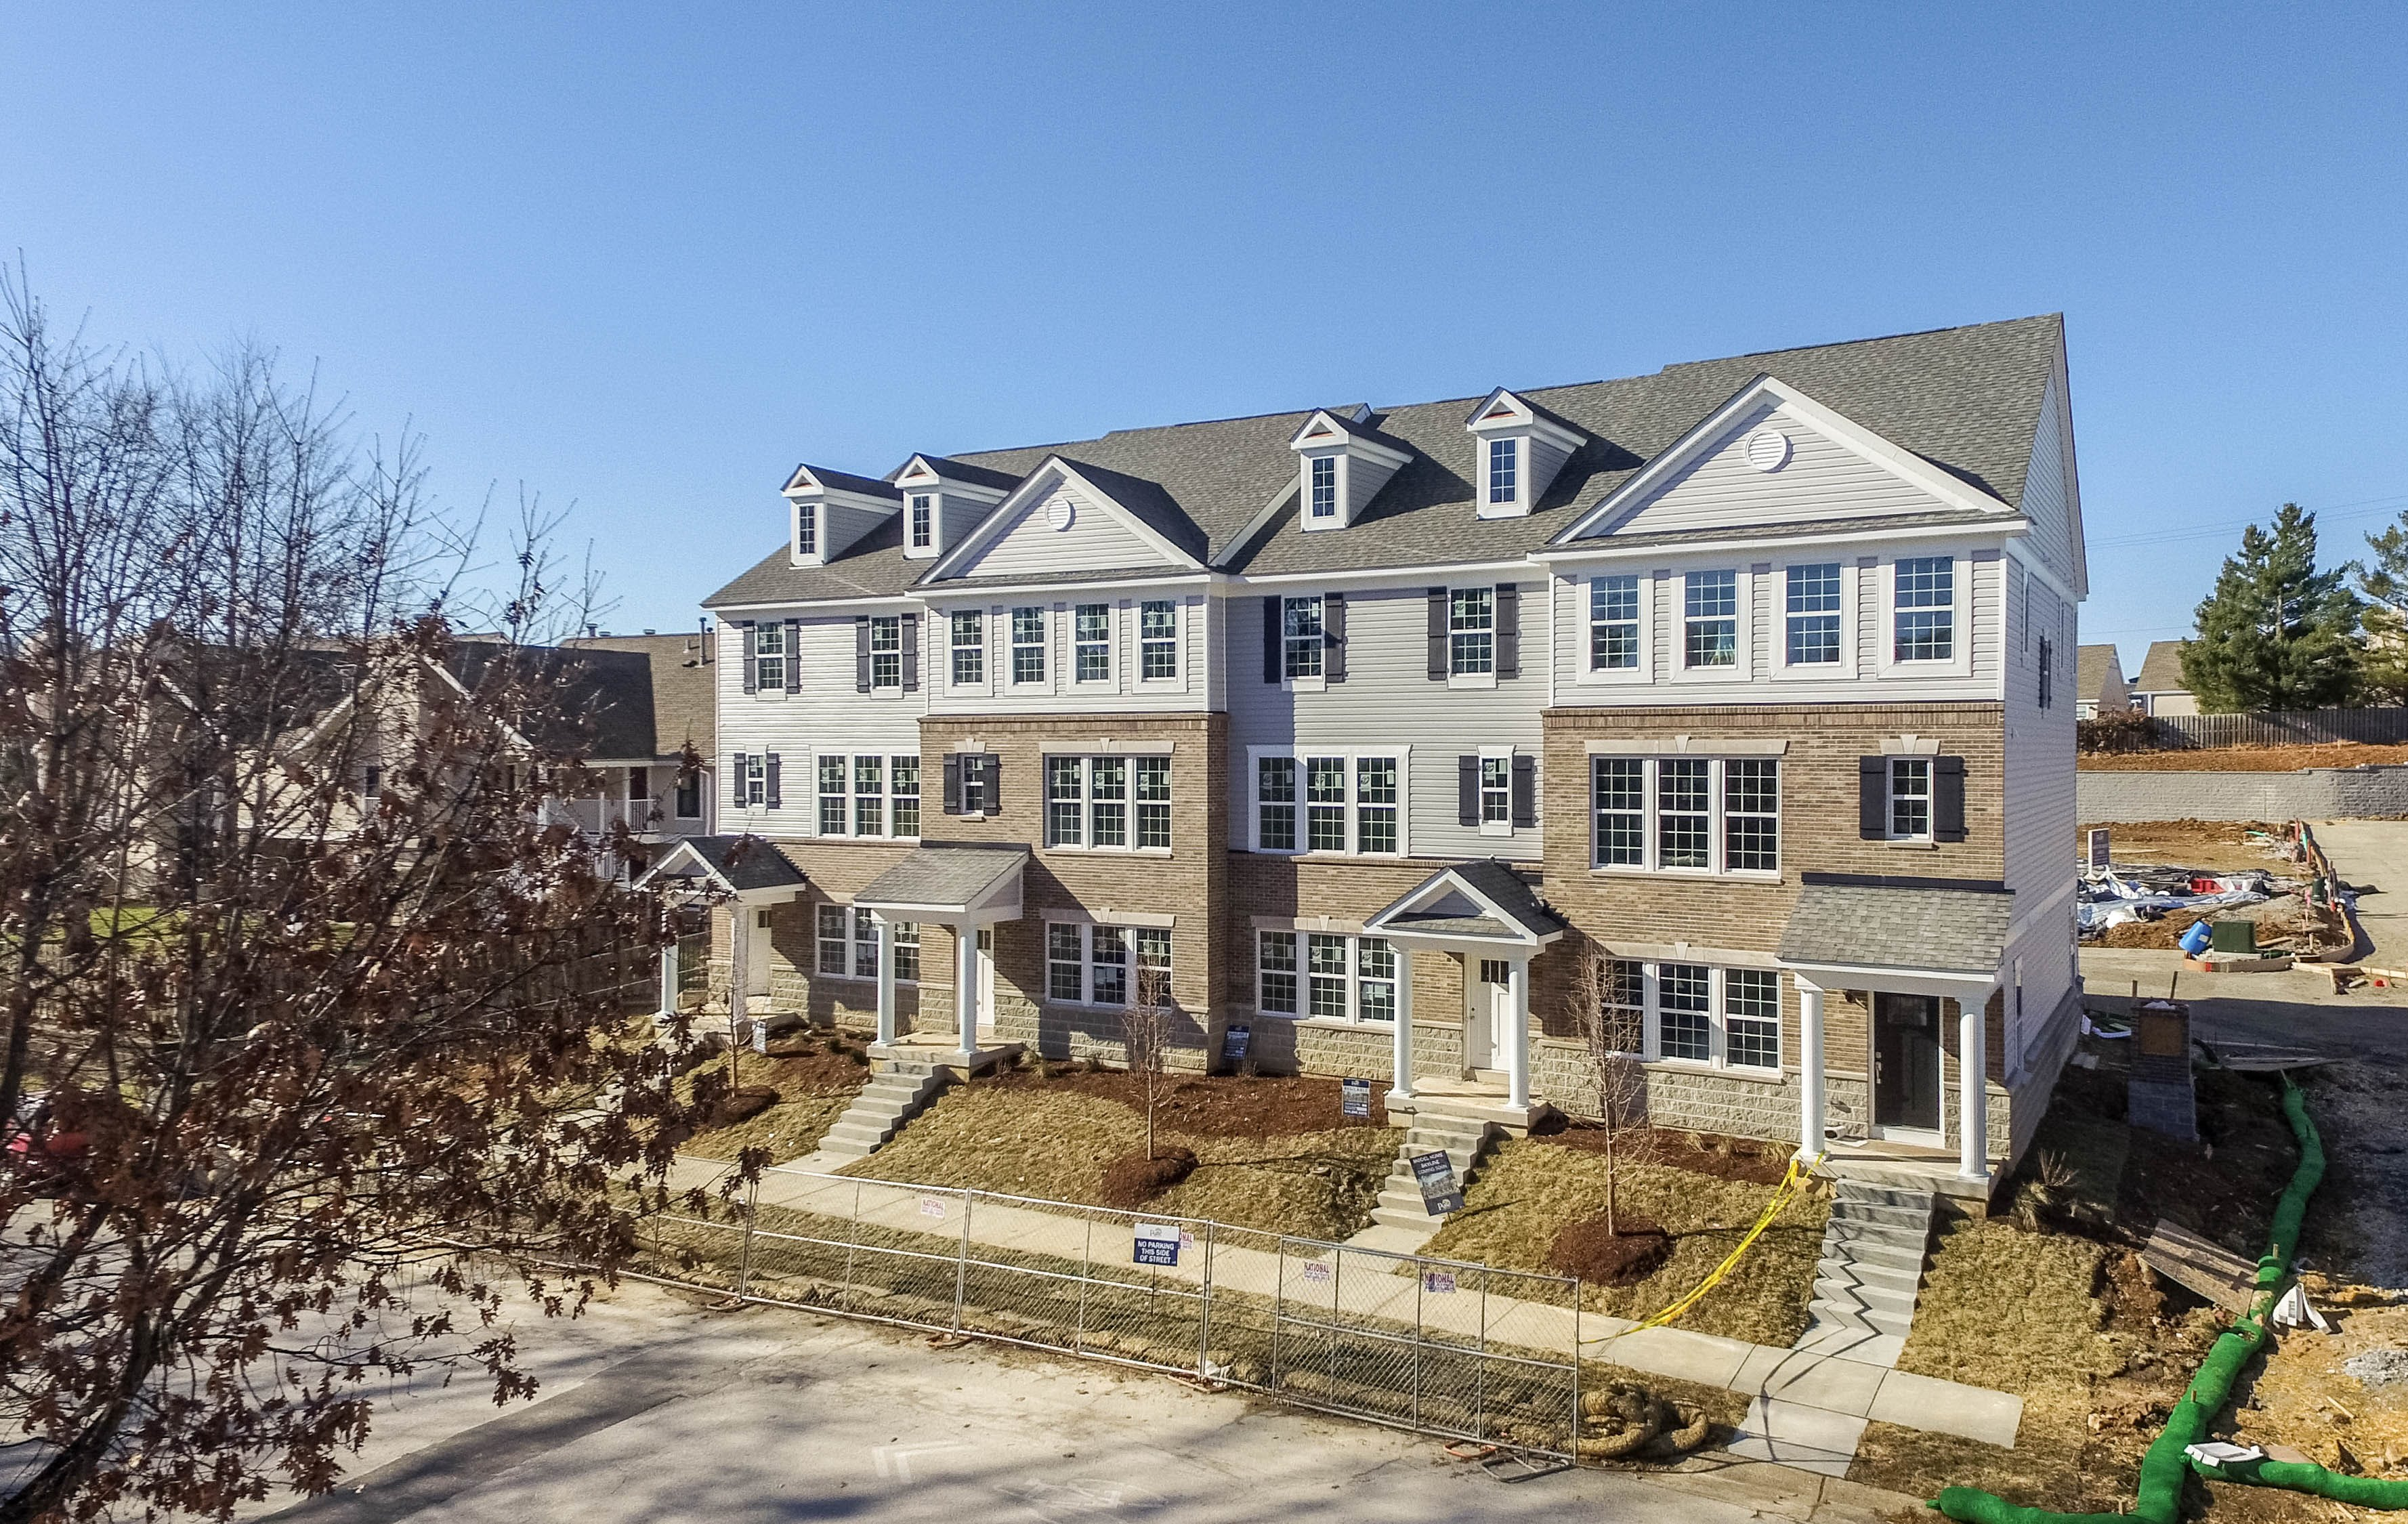 1156 Sydney Park - Pulte Group (47 of 60)